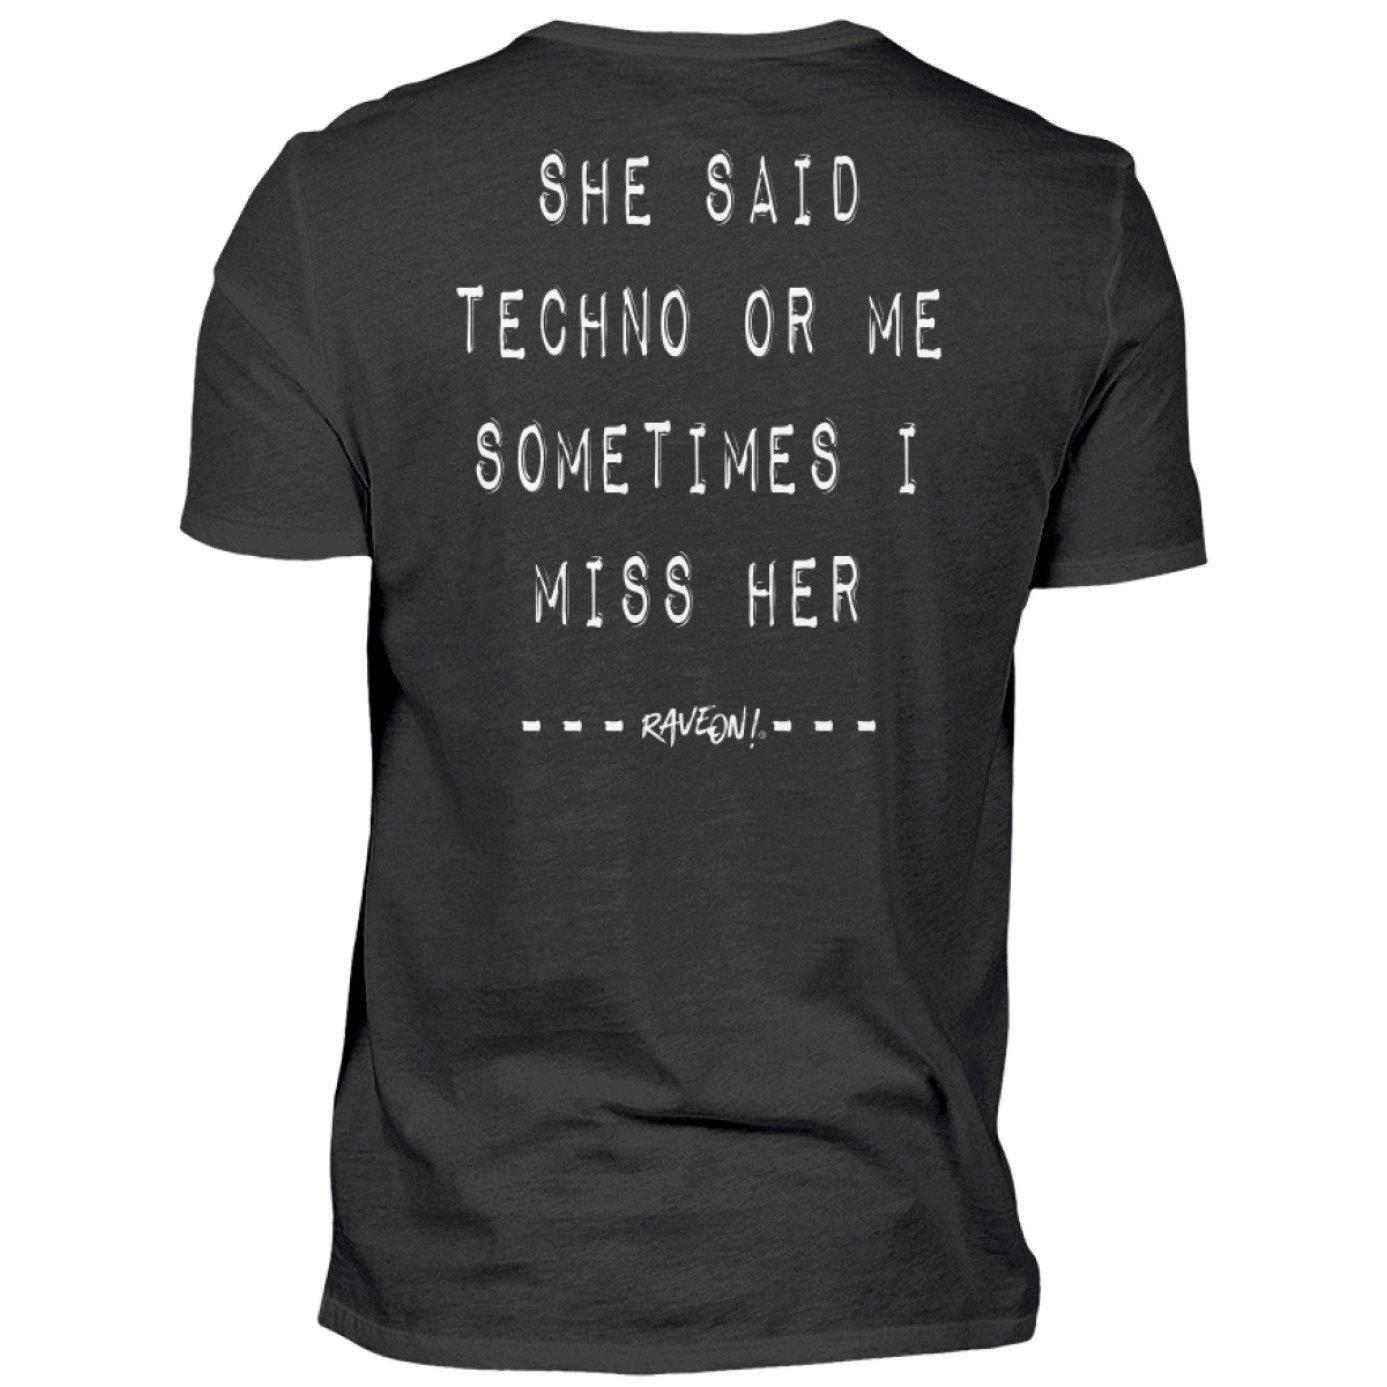 Techno or Me - SHE SAID - Rave On!® - Herren V-Neck Shirt V-Neck Herrenshirt Black / S - Rave On!® der Club & Techno Szene Shop für Coole Junge Mode Streetwear Style & Fashion Outfits + Sexy Festival 420 Stuff